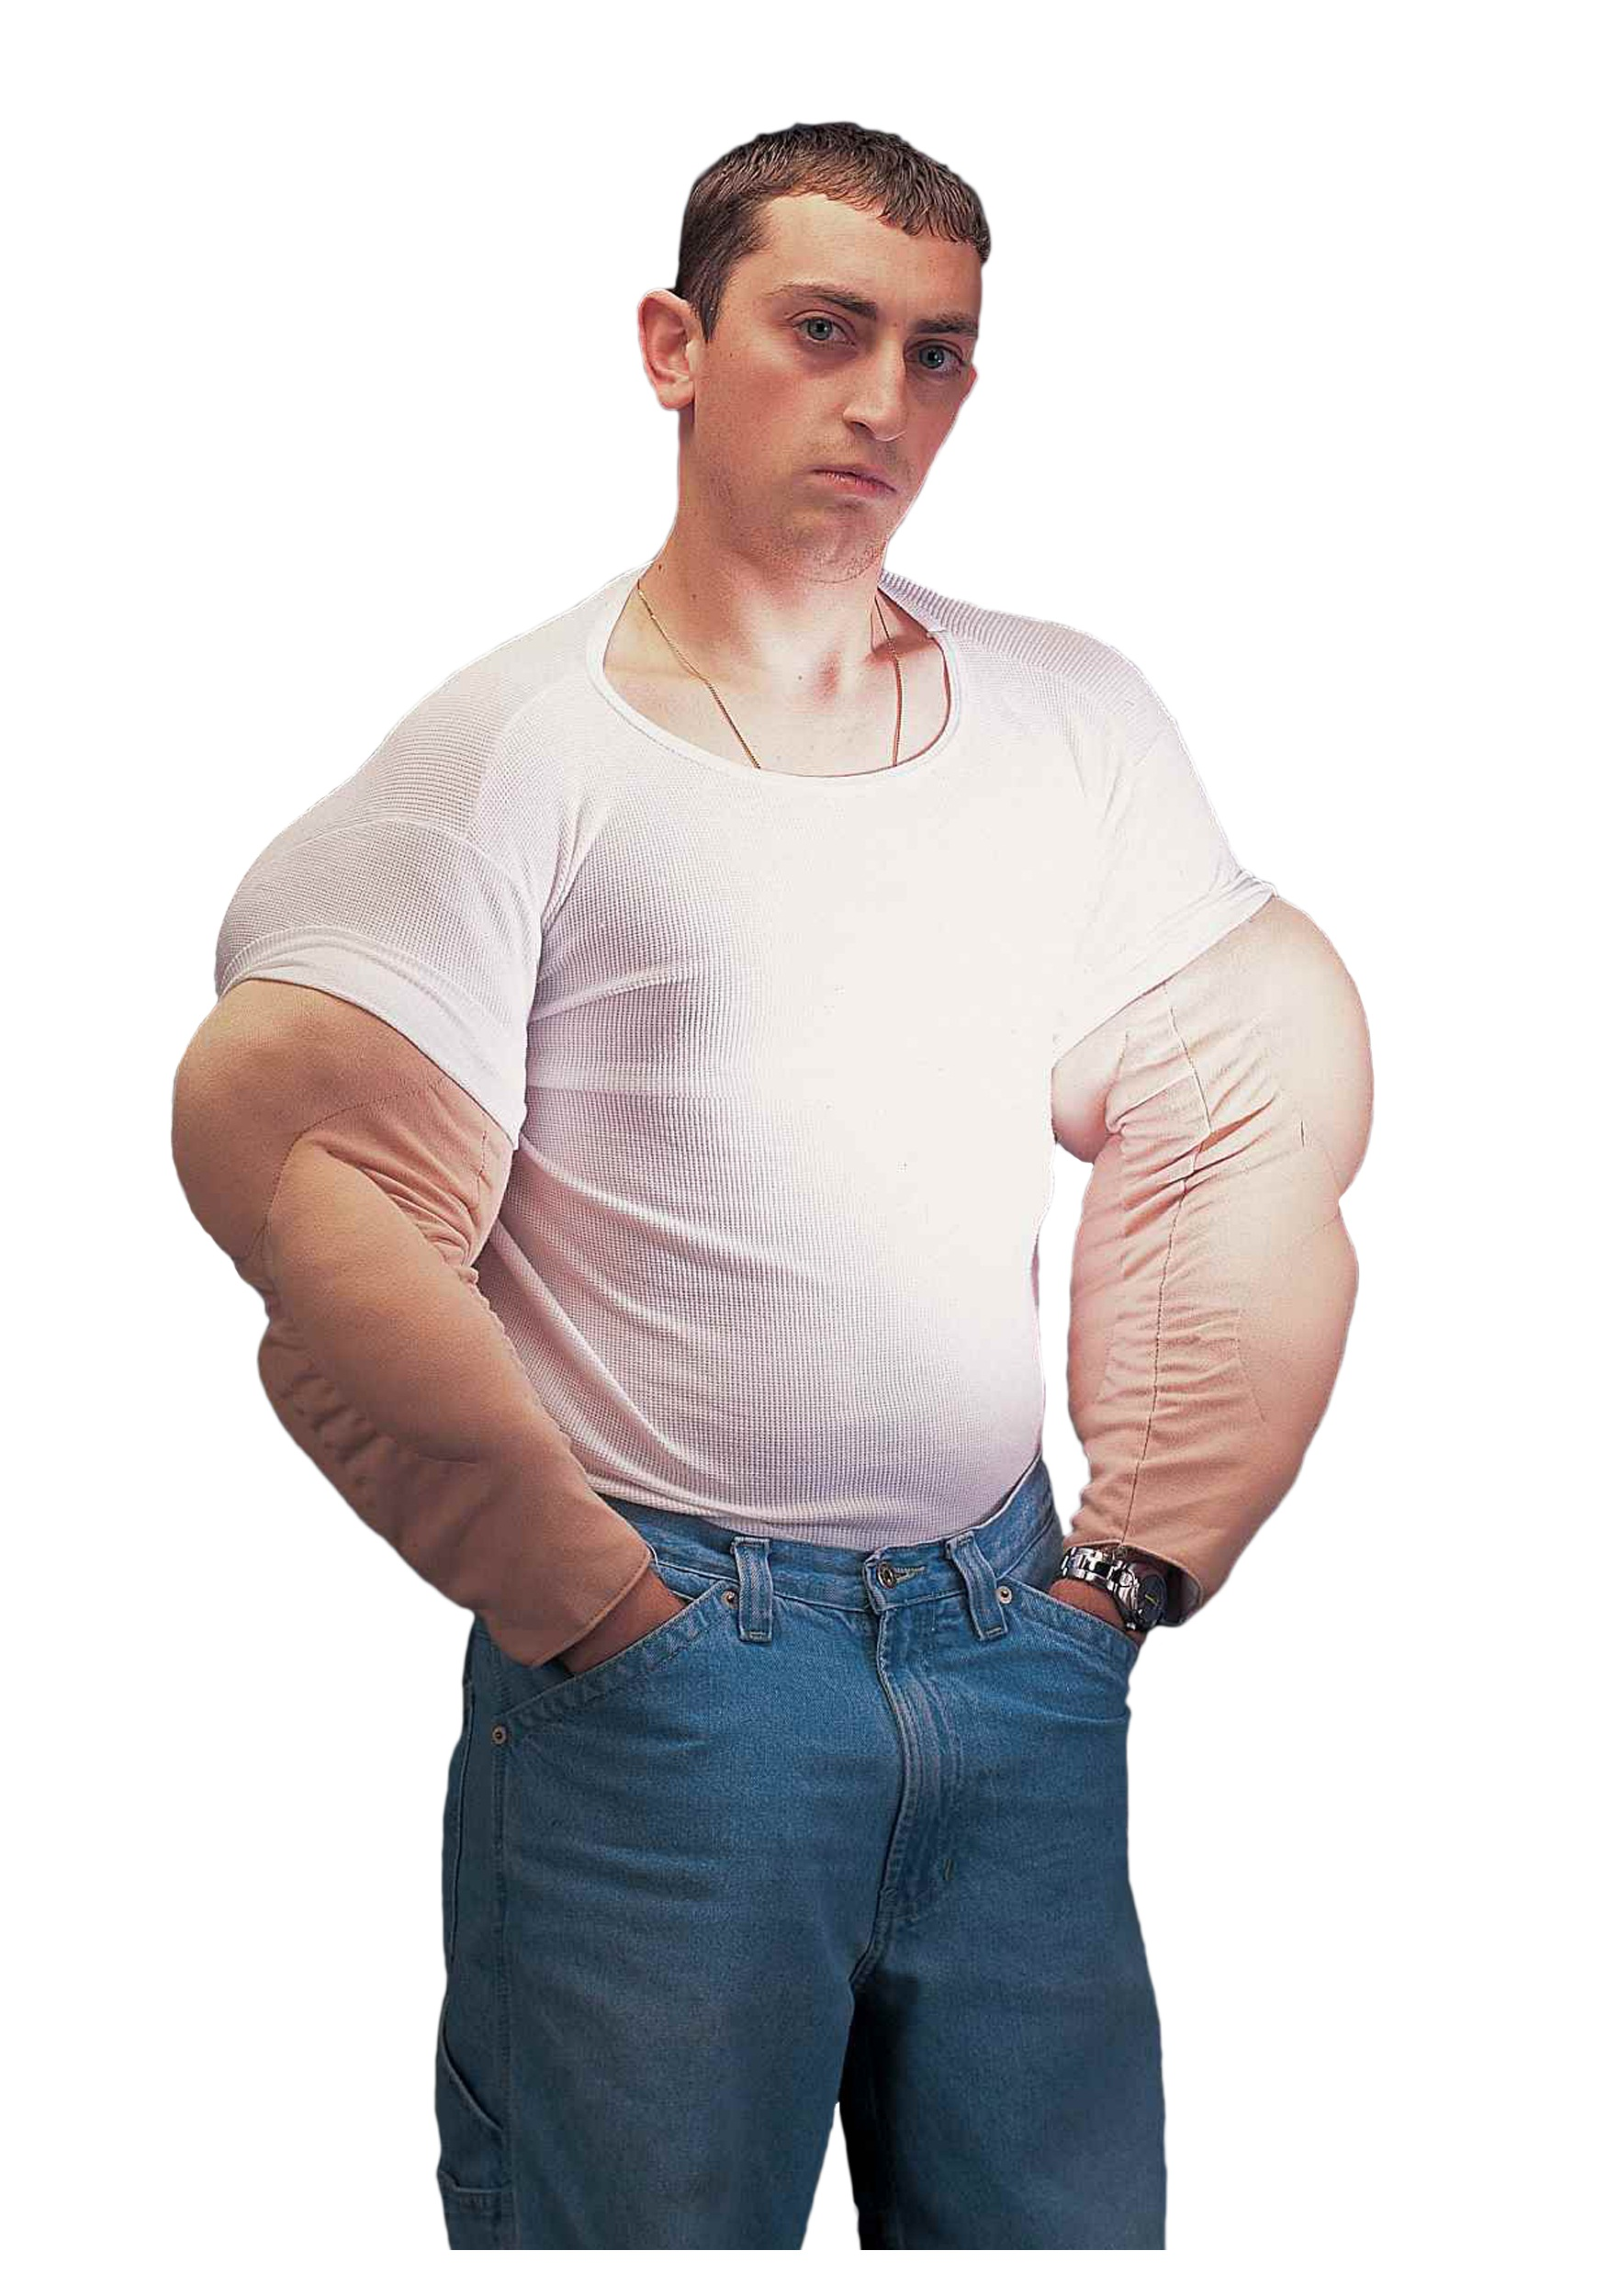 Muscle Man Arms